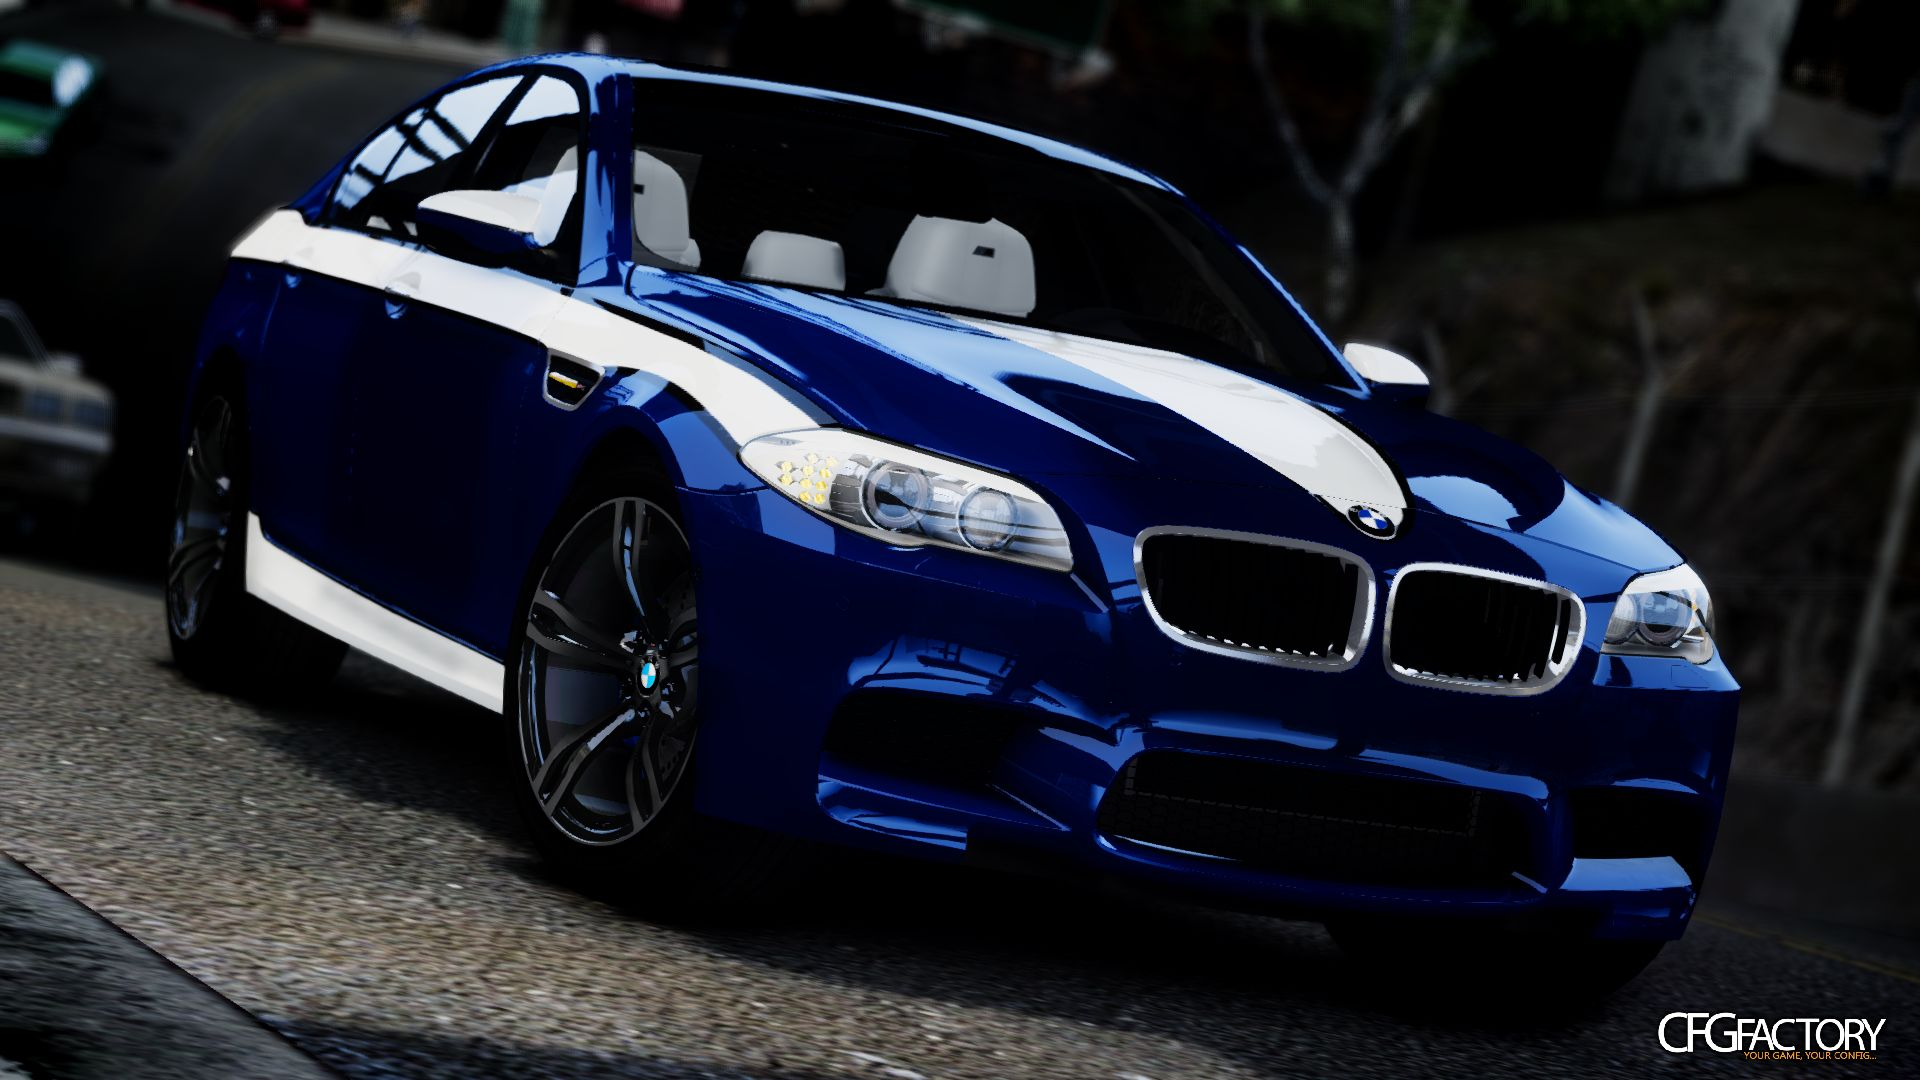 bmw m5 f10 paint job download cfgfactory